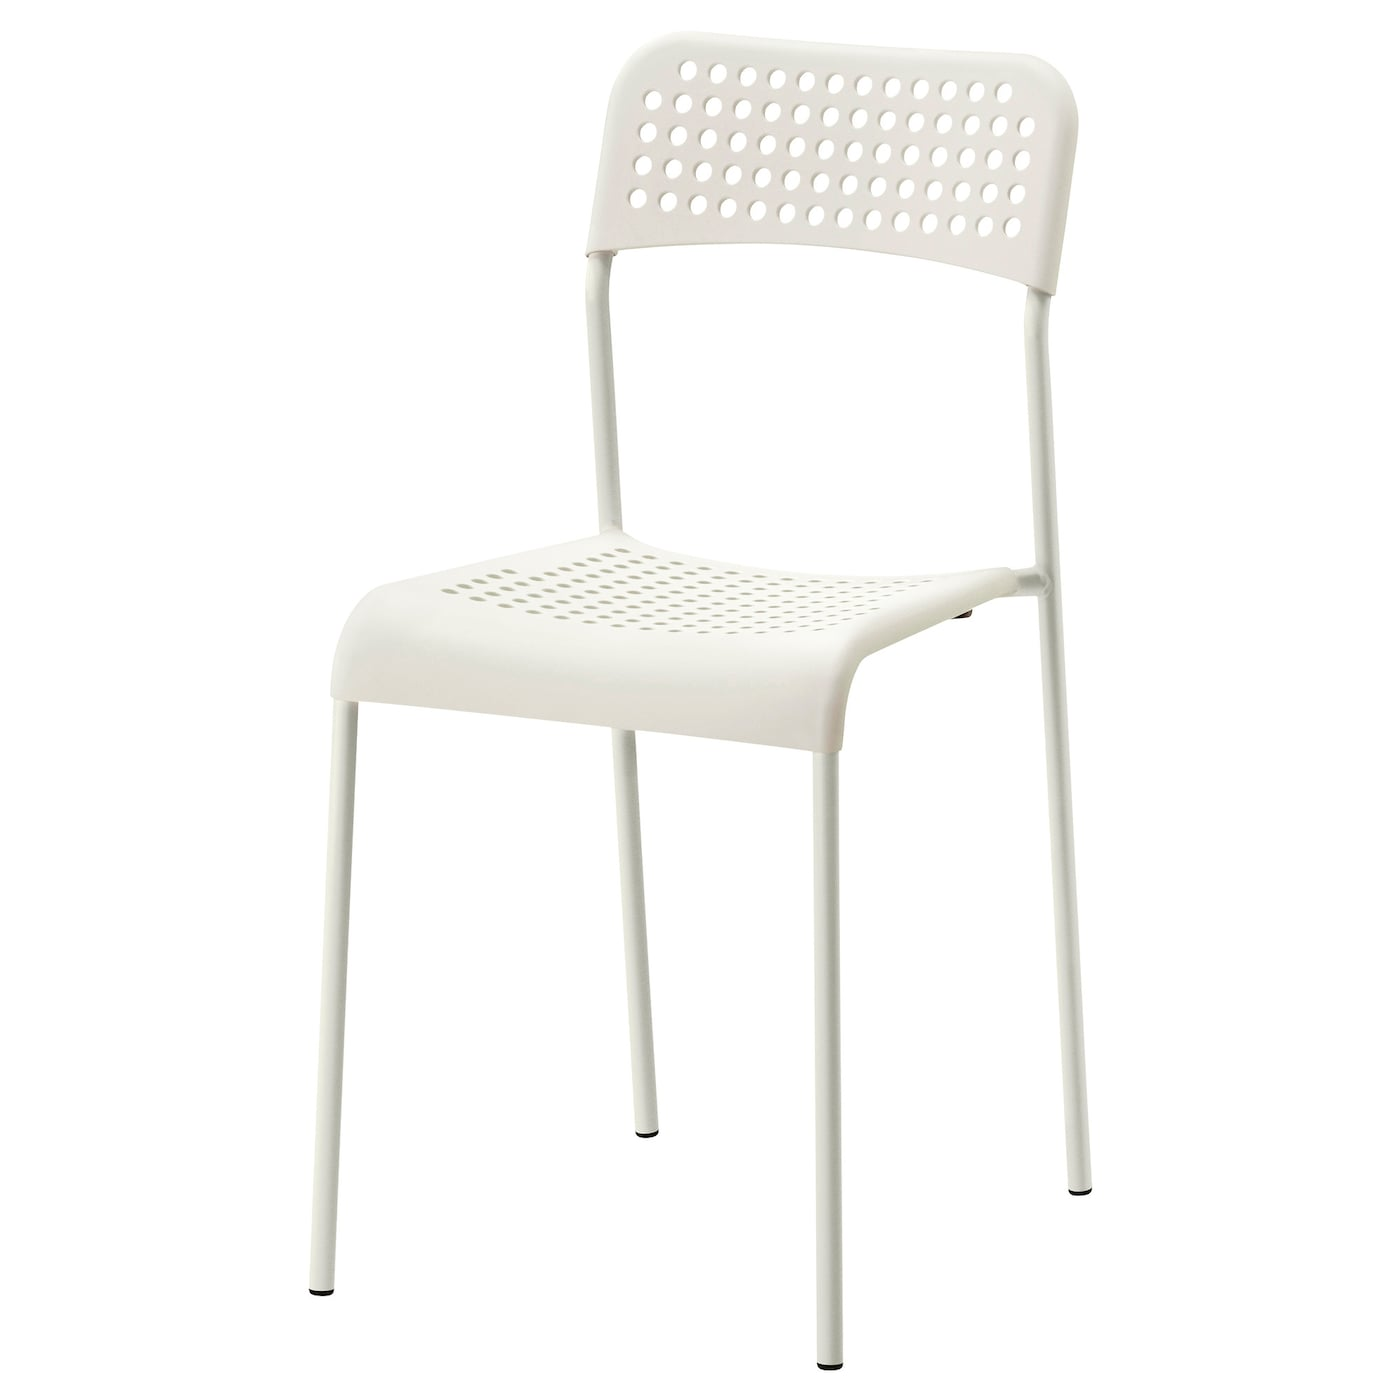 chairs - upholstered & foldable dining chairs - ikea